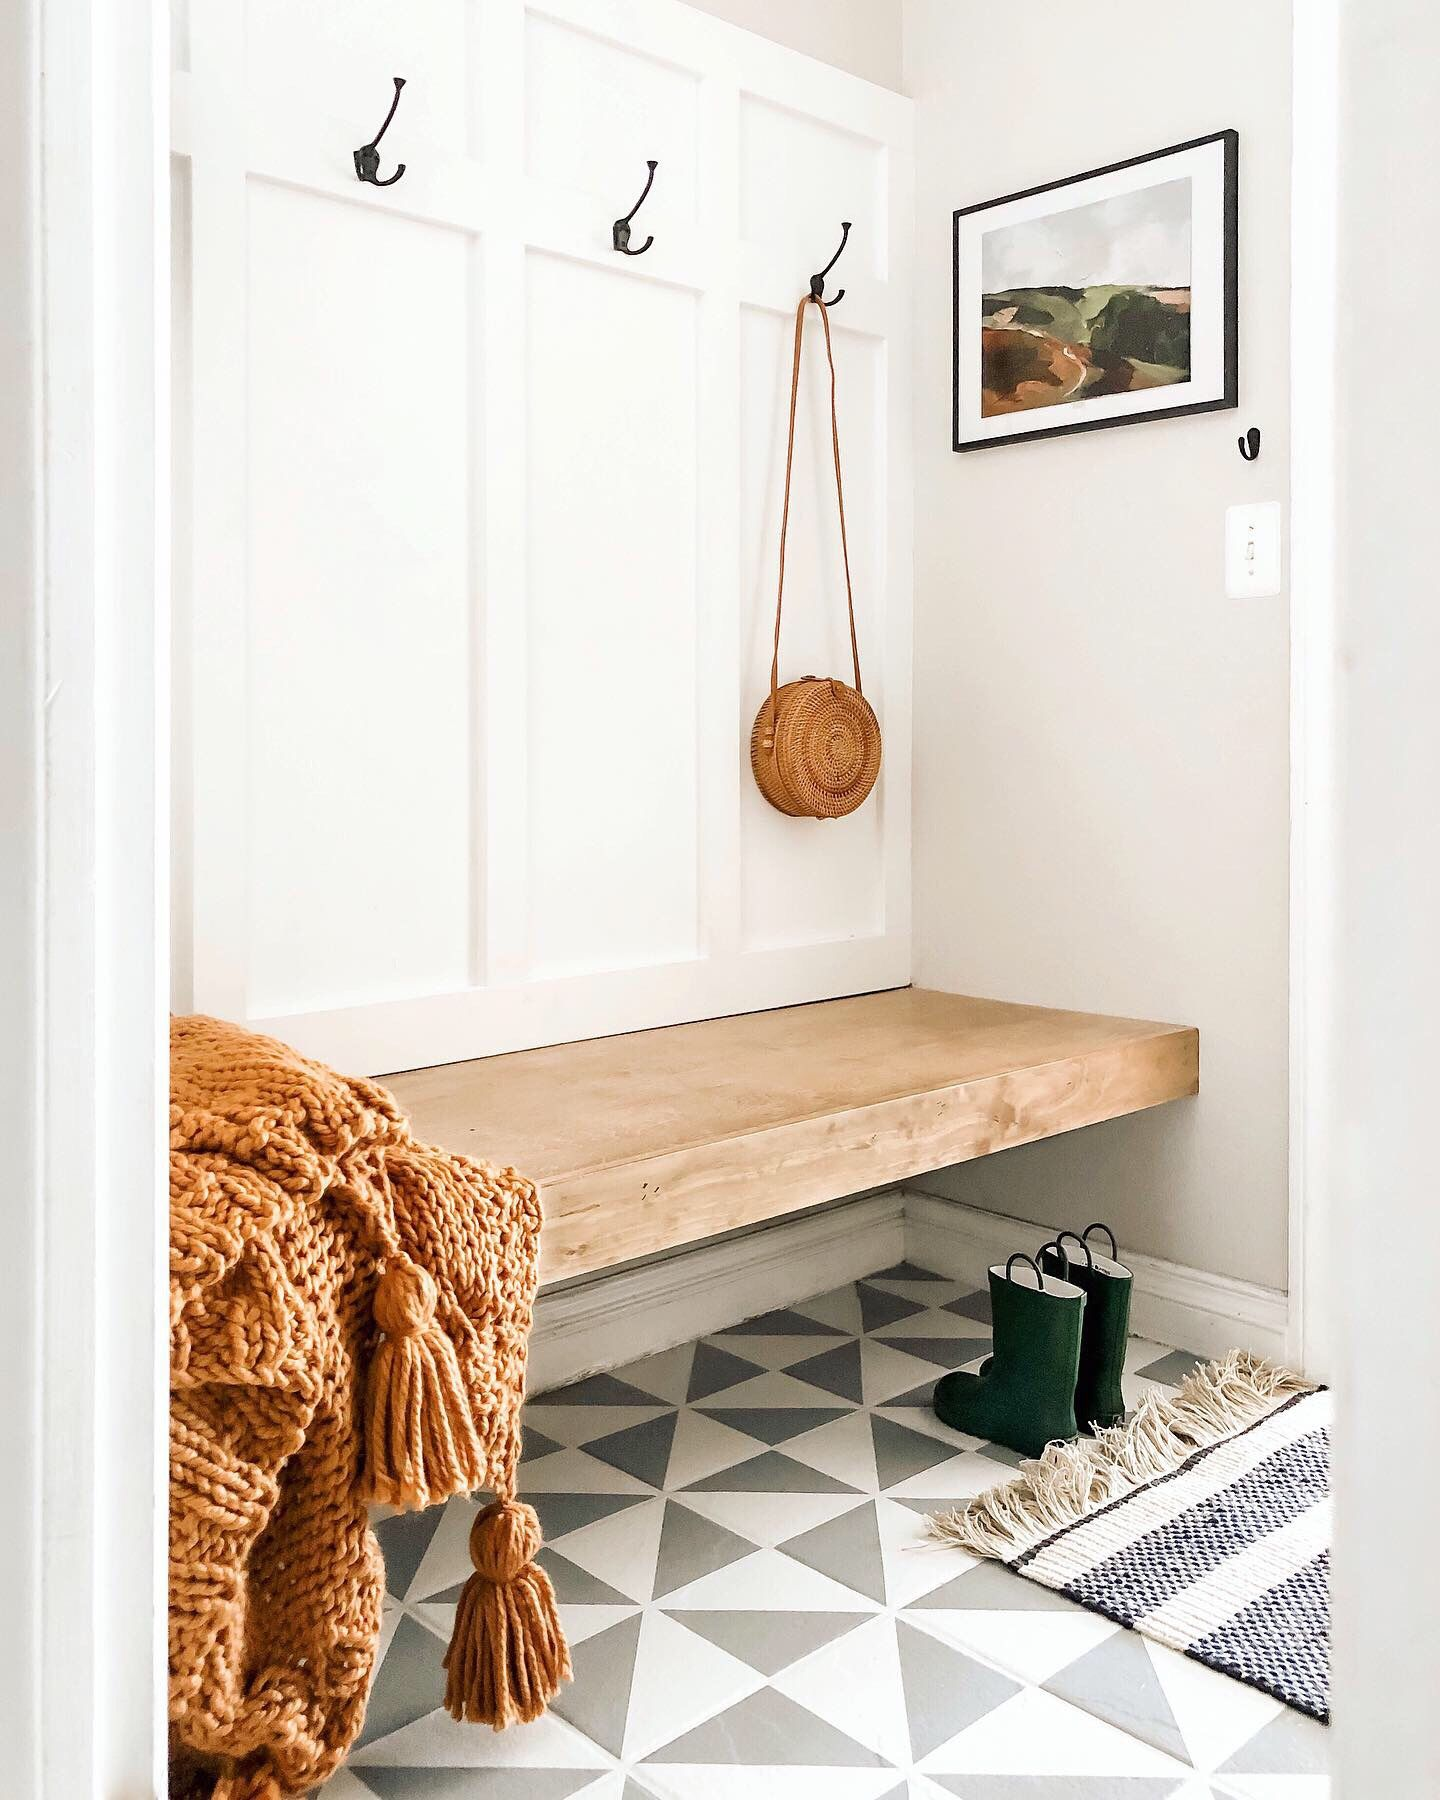 Home Decor Inspiration For Our New Place The Fox She In 2021 Mudroom Decor Mudroom Design House Interior Build me home mudroom edition